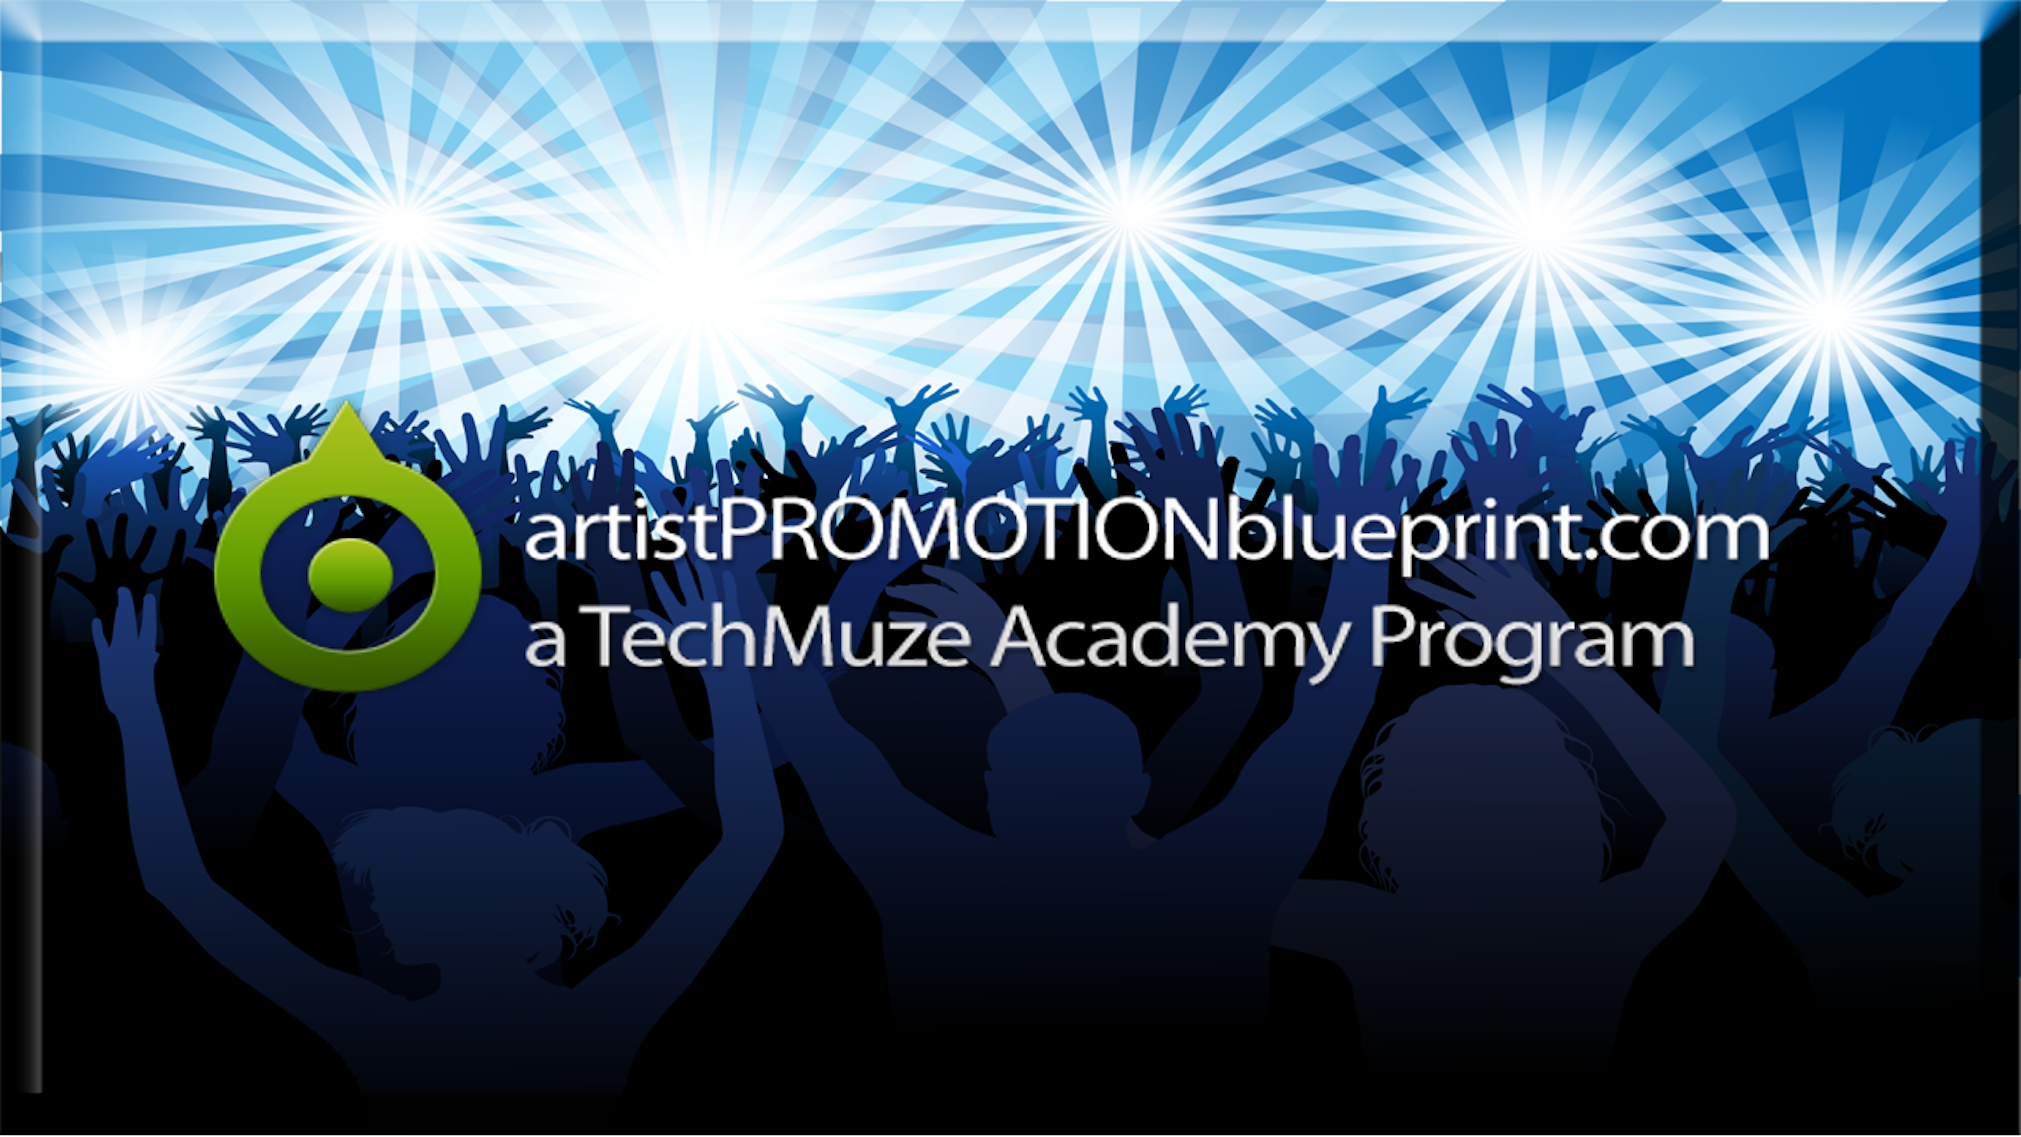 The Artist Promotion Blueprint